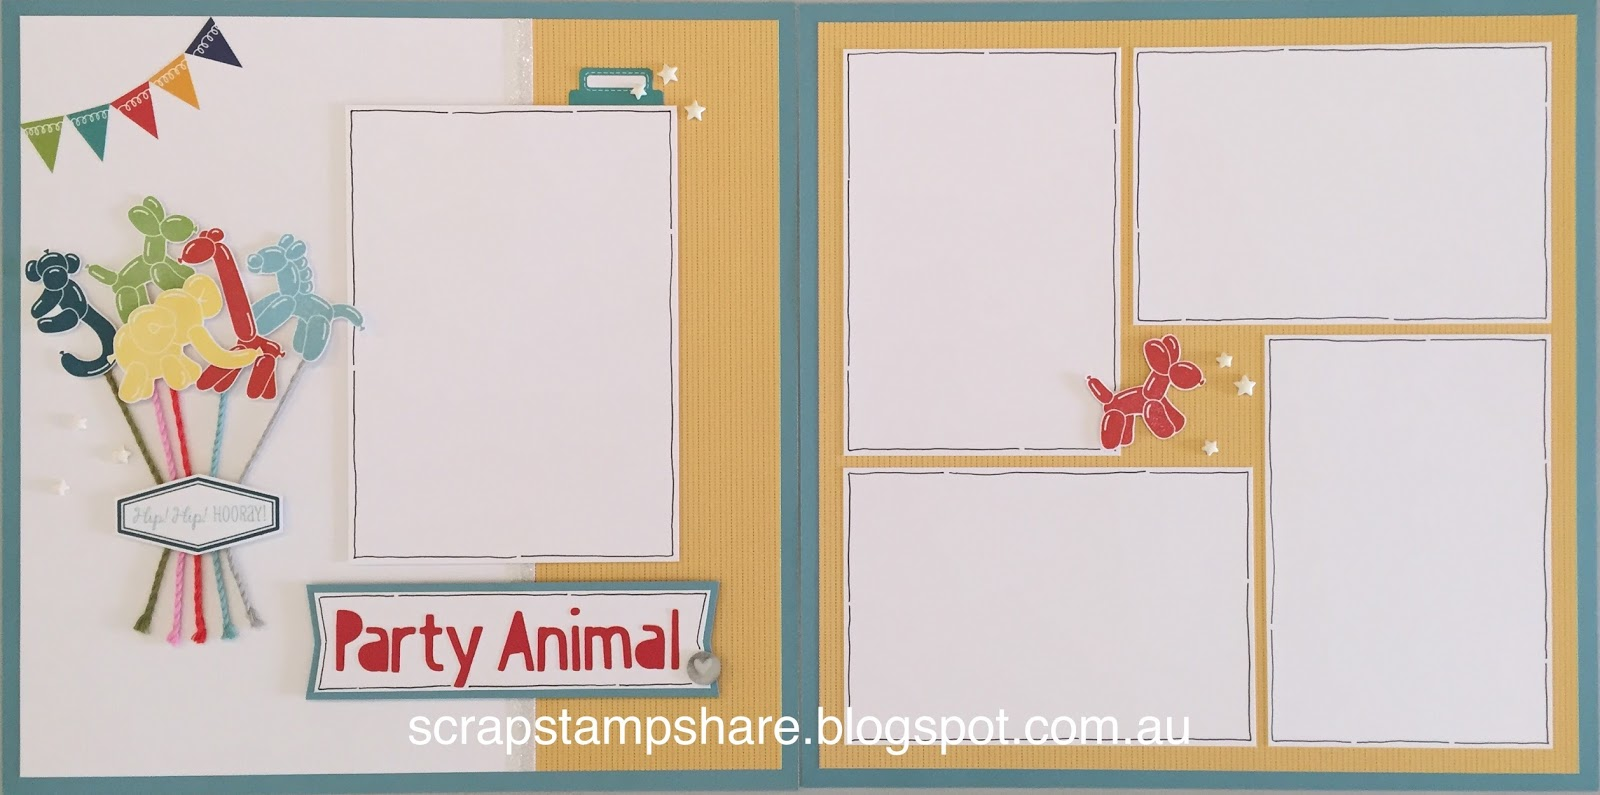 How to scrapbook like poppy - I Also Decided To Add A Second Page To Create A Double Page Layout As That Is How I Like To Scrapbook I Very Rarely Use Just A Single Page Layout In My